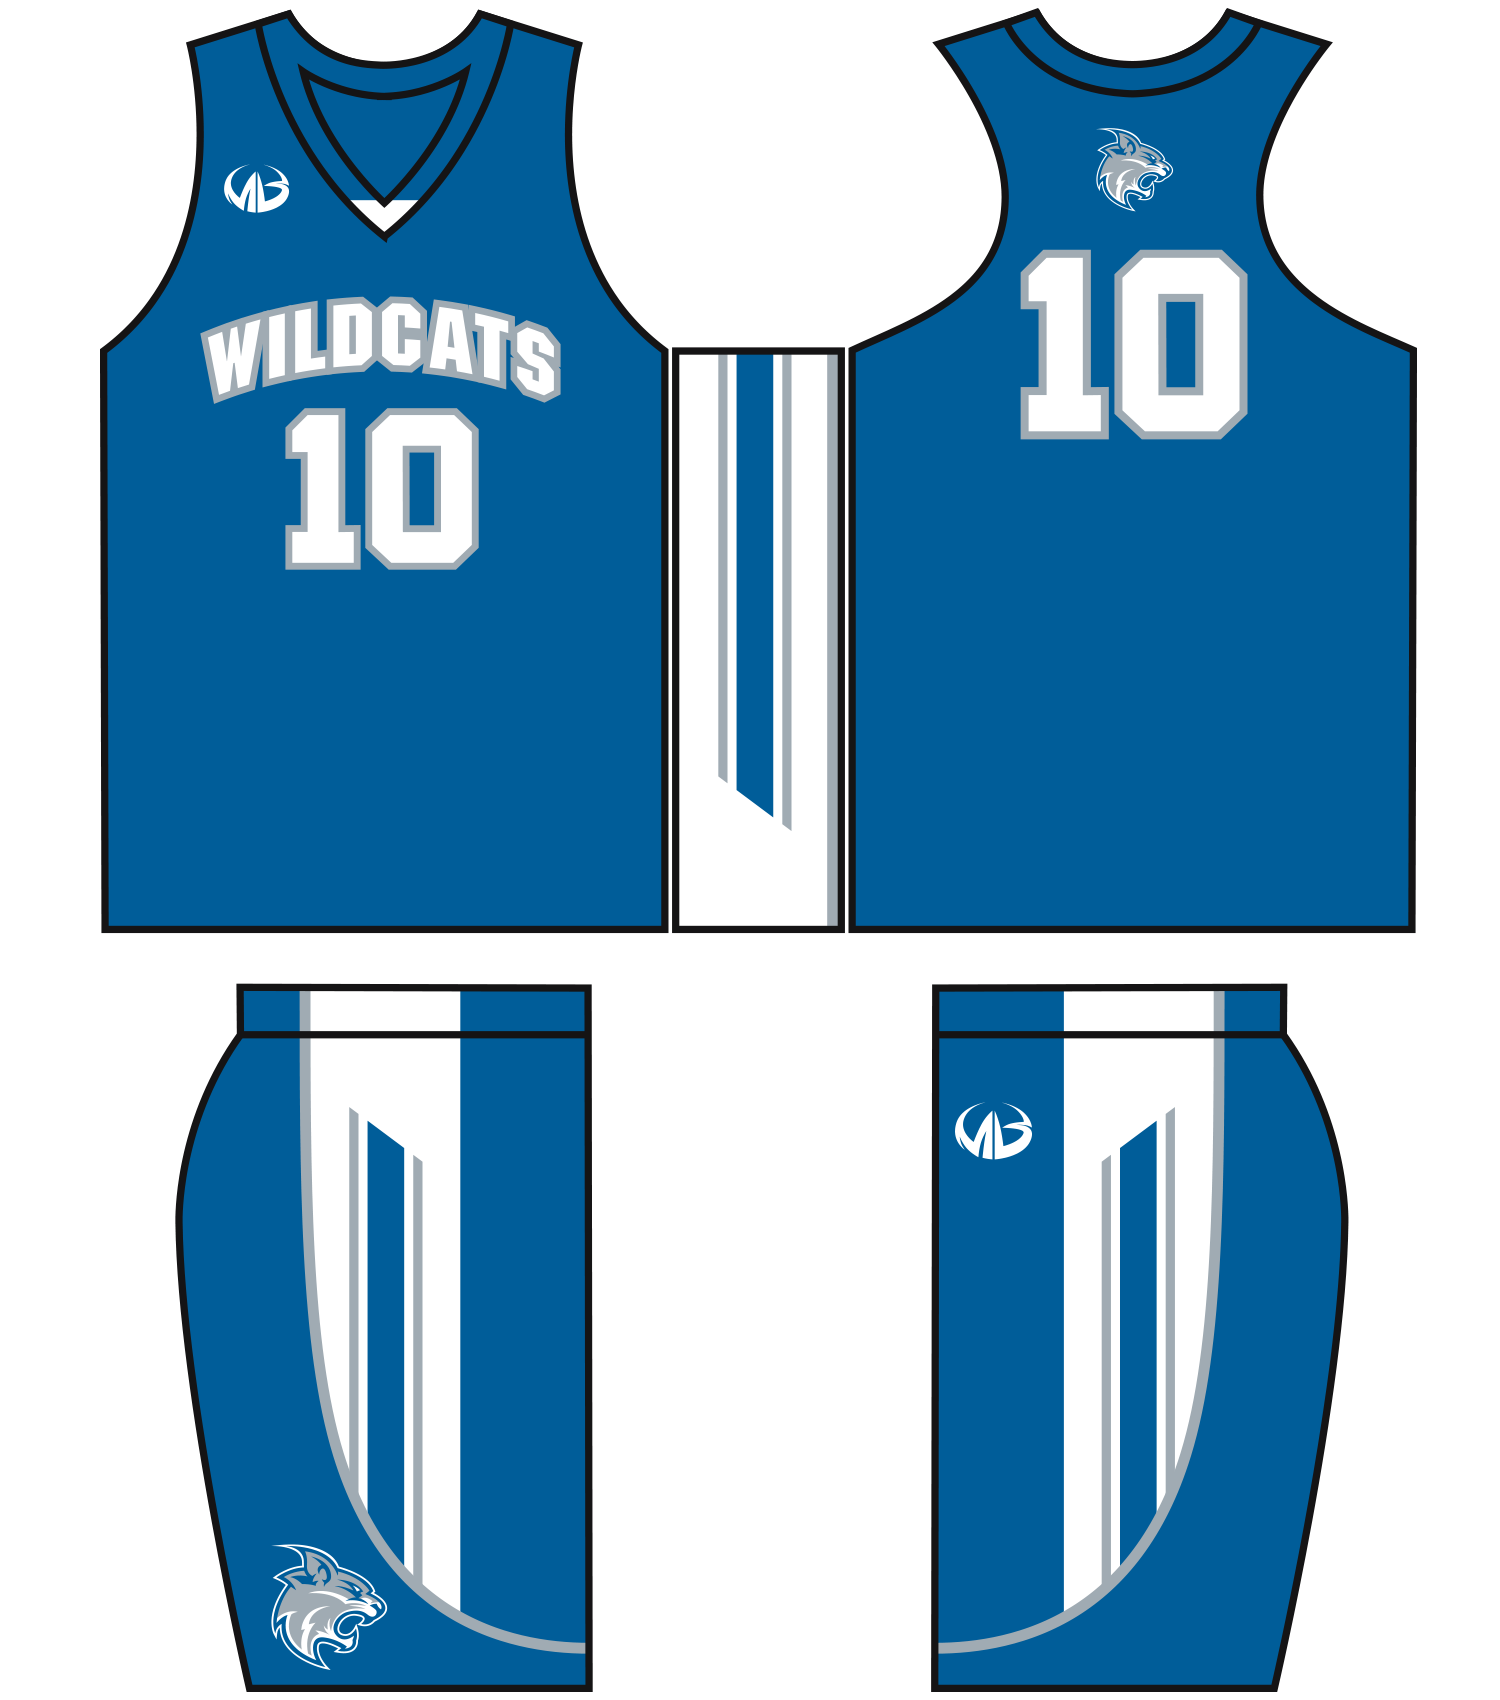 Custom basketball uniforms custom sports clothing team for Softball uniform design templates